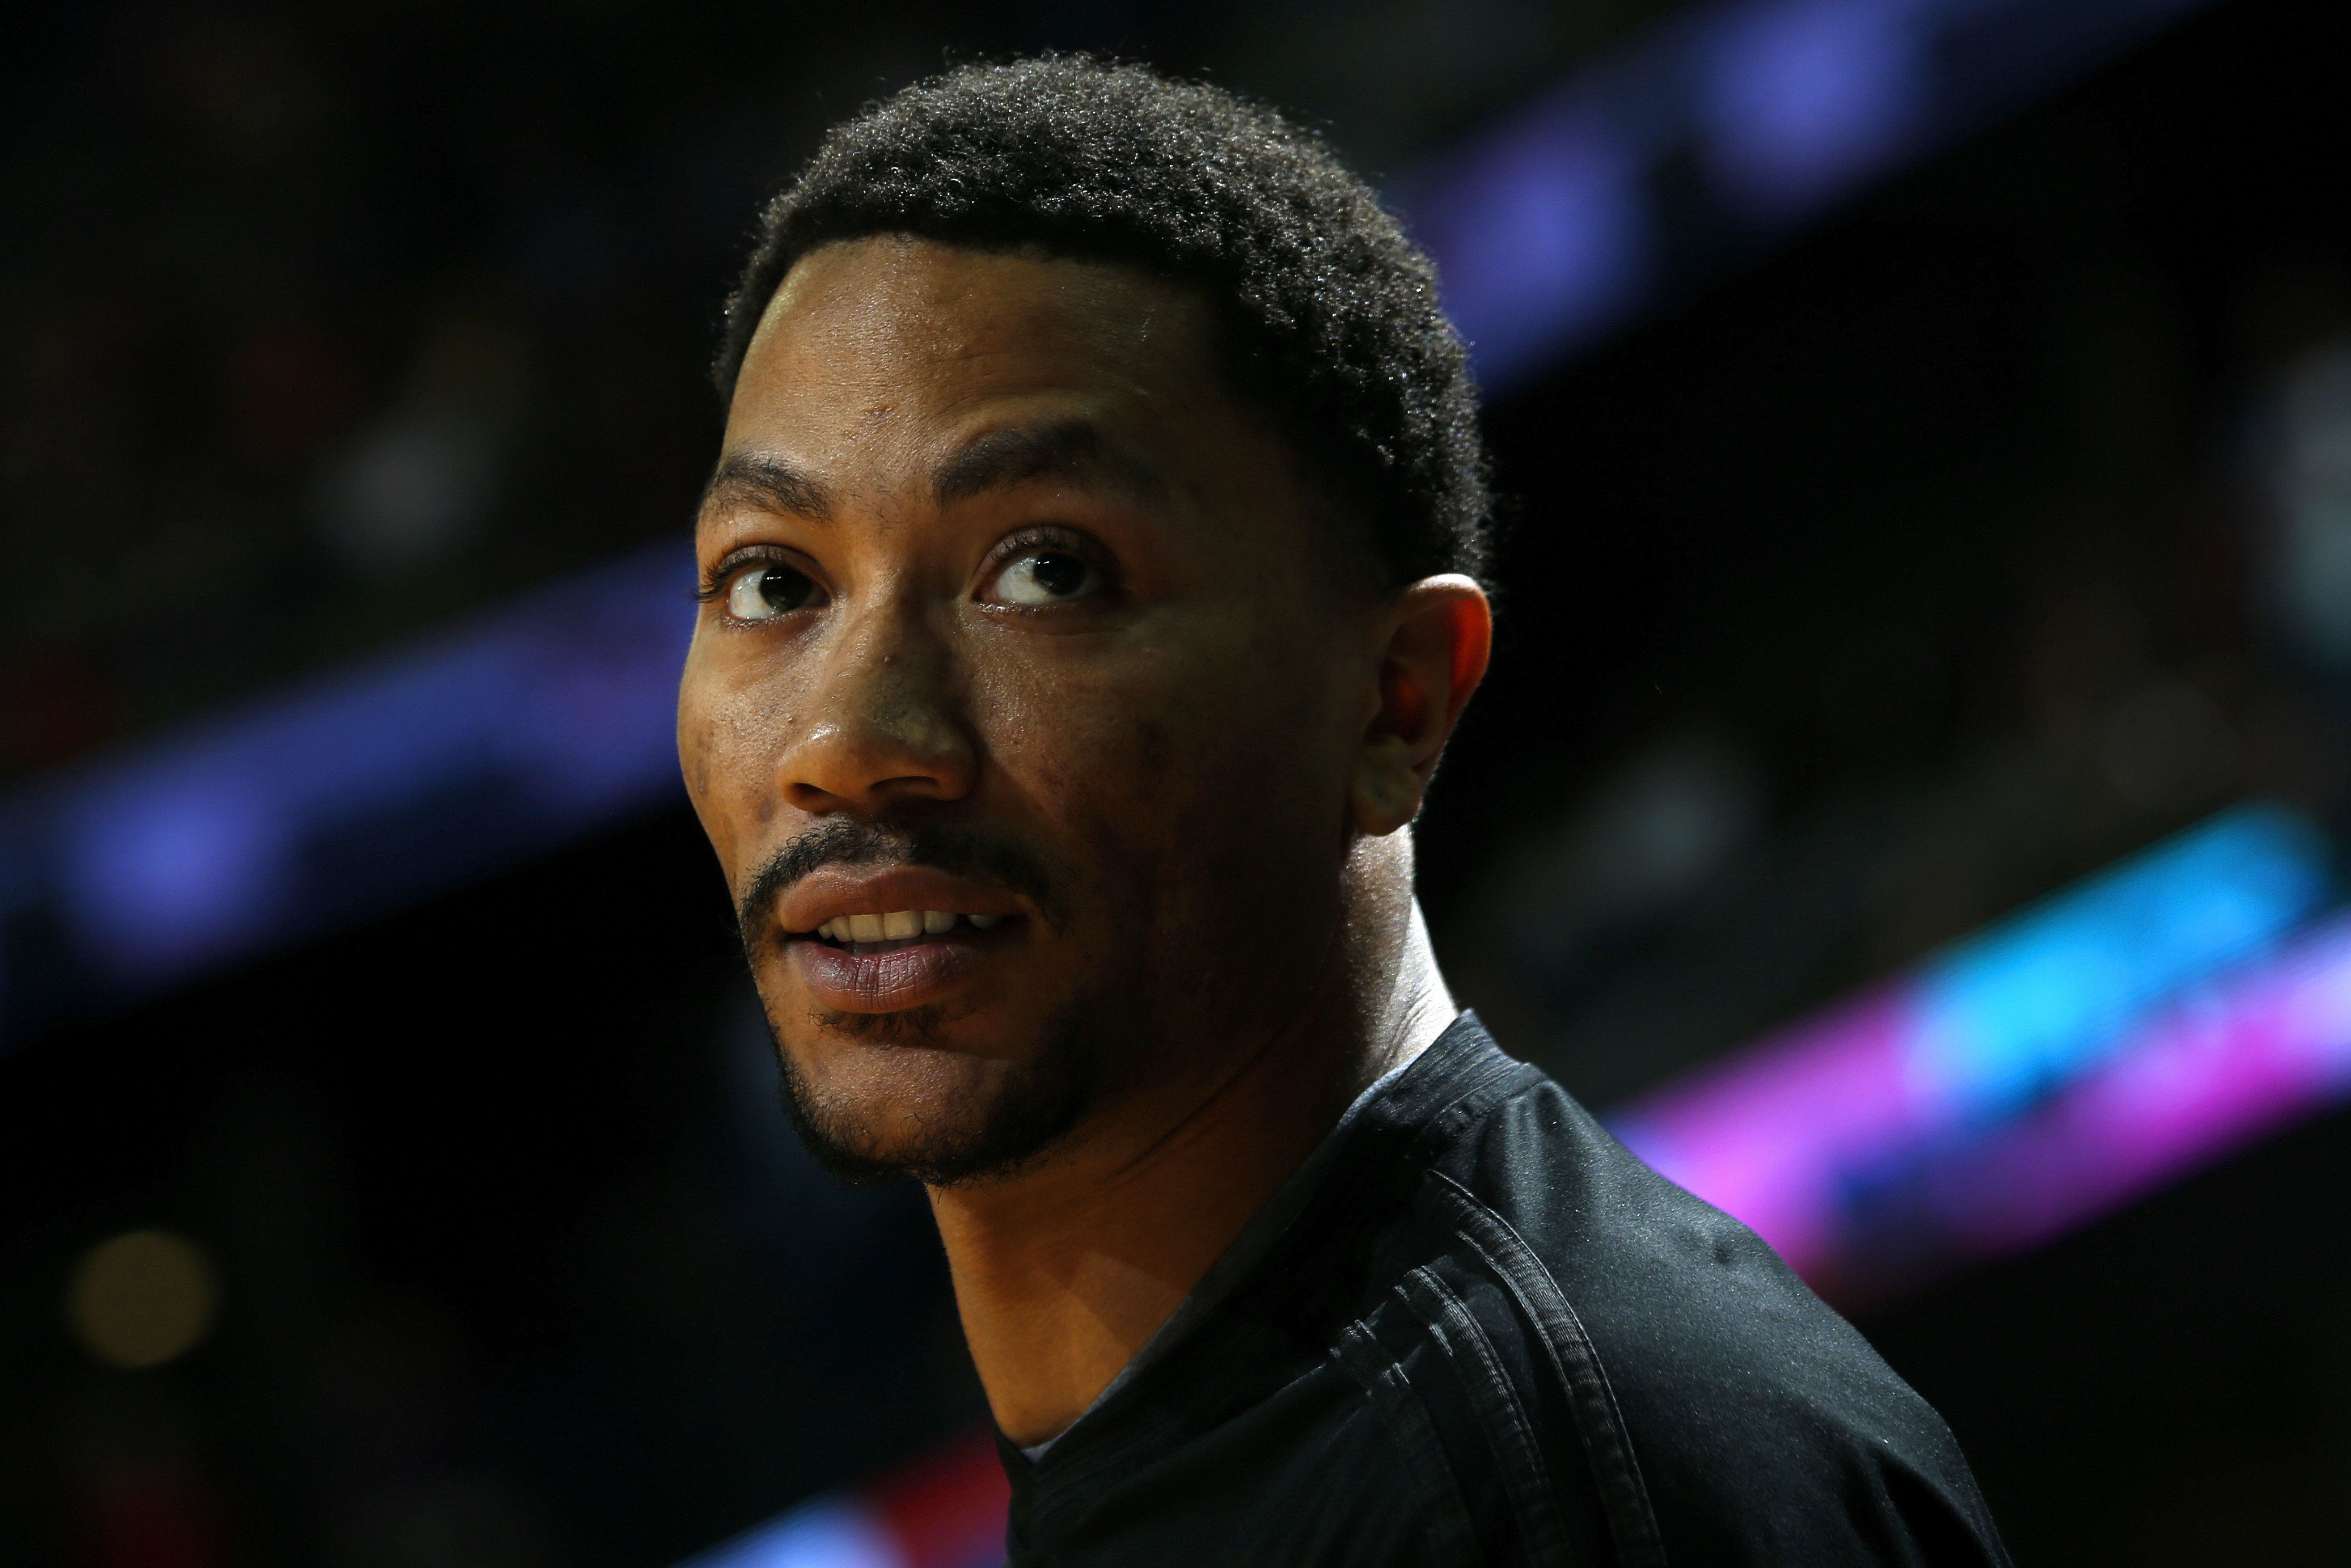 NEW ORLEANS, LA - APRIL 11:  A close up shot of Derrick Rose #1 of the Chicago Bulls during the game against the New Orleans Pelicans on April 11, 2016 at the Smoothie King Center in New Orleans, Louisiana. NOTE TO USER: User expressly acknowledges and agrees that, by downloading and or using this Photograph, user is consenting to the terms and conditions of the Getty Images License Agreement. Mandatory Copyright Notice: Copyright 2015 NBAE (Photo by Jonathan Bachman/NBAE via Getty Images)